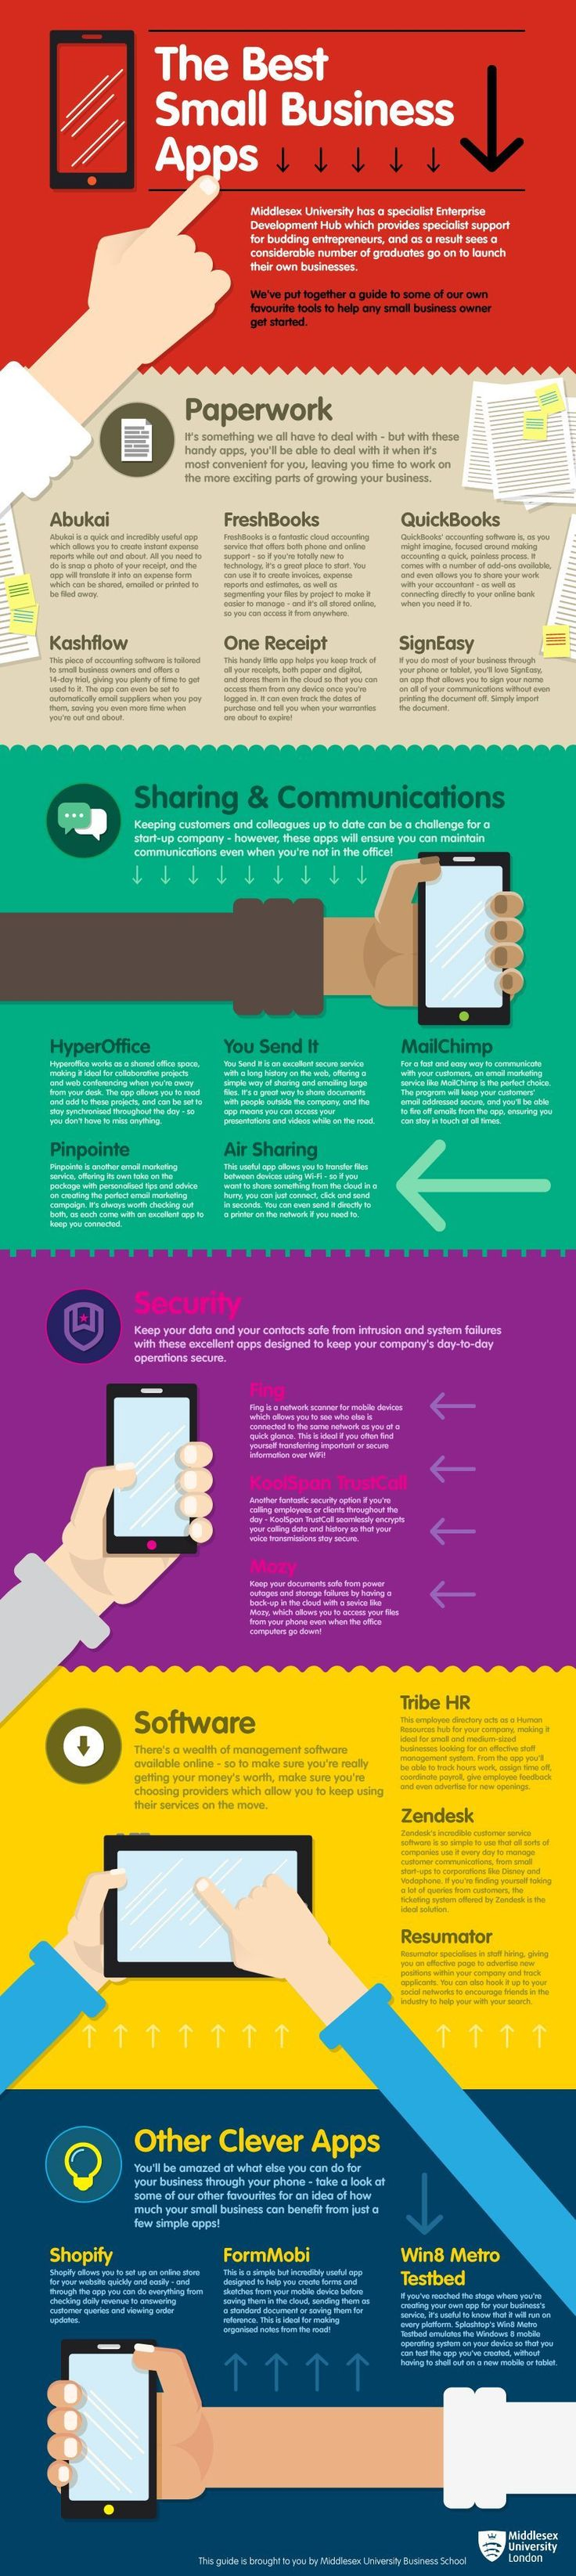 The best small business apps [INFOGRAPHIC]